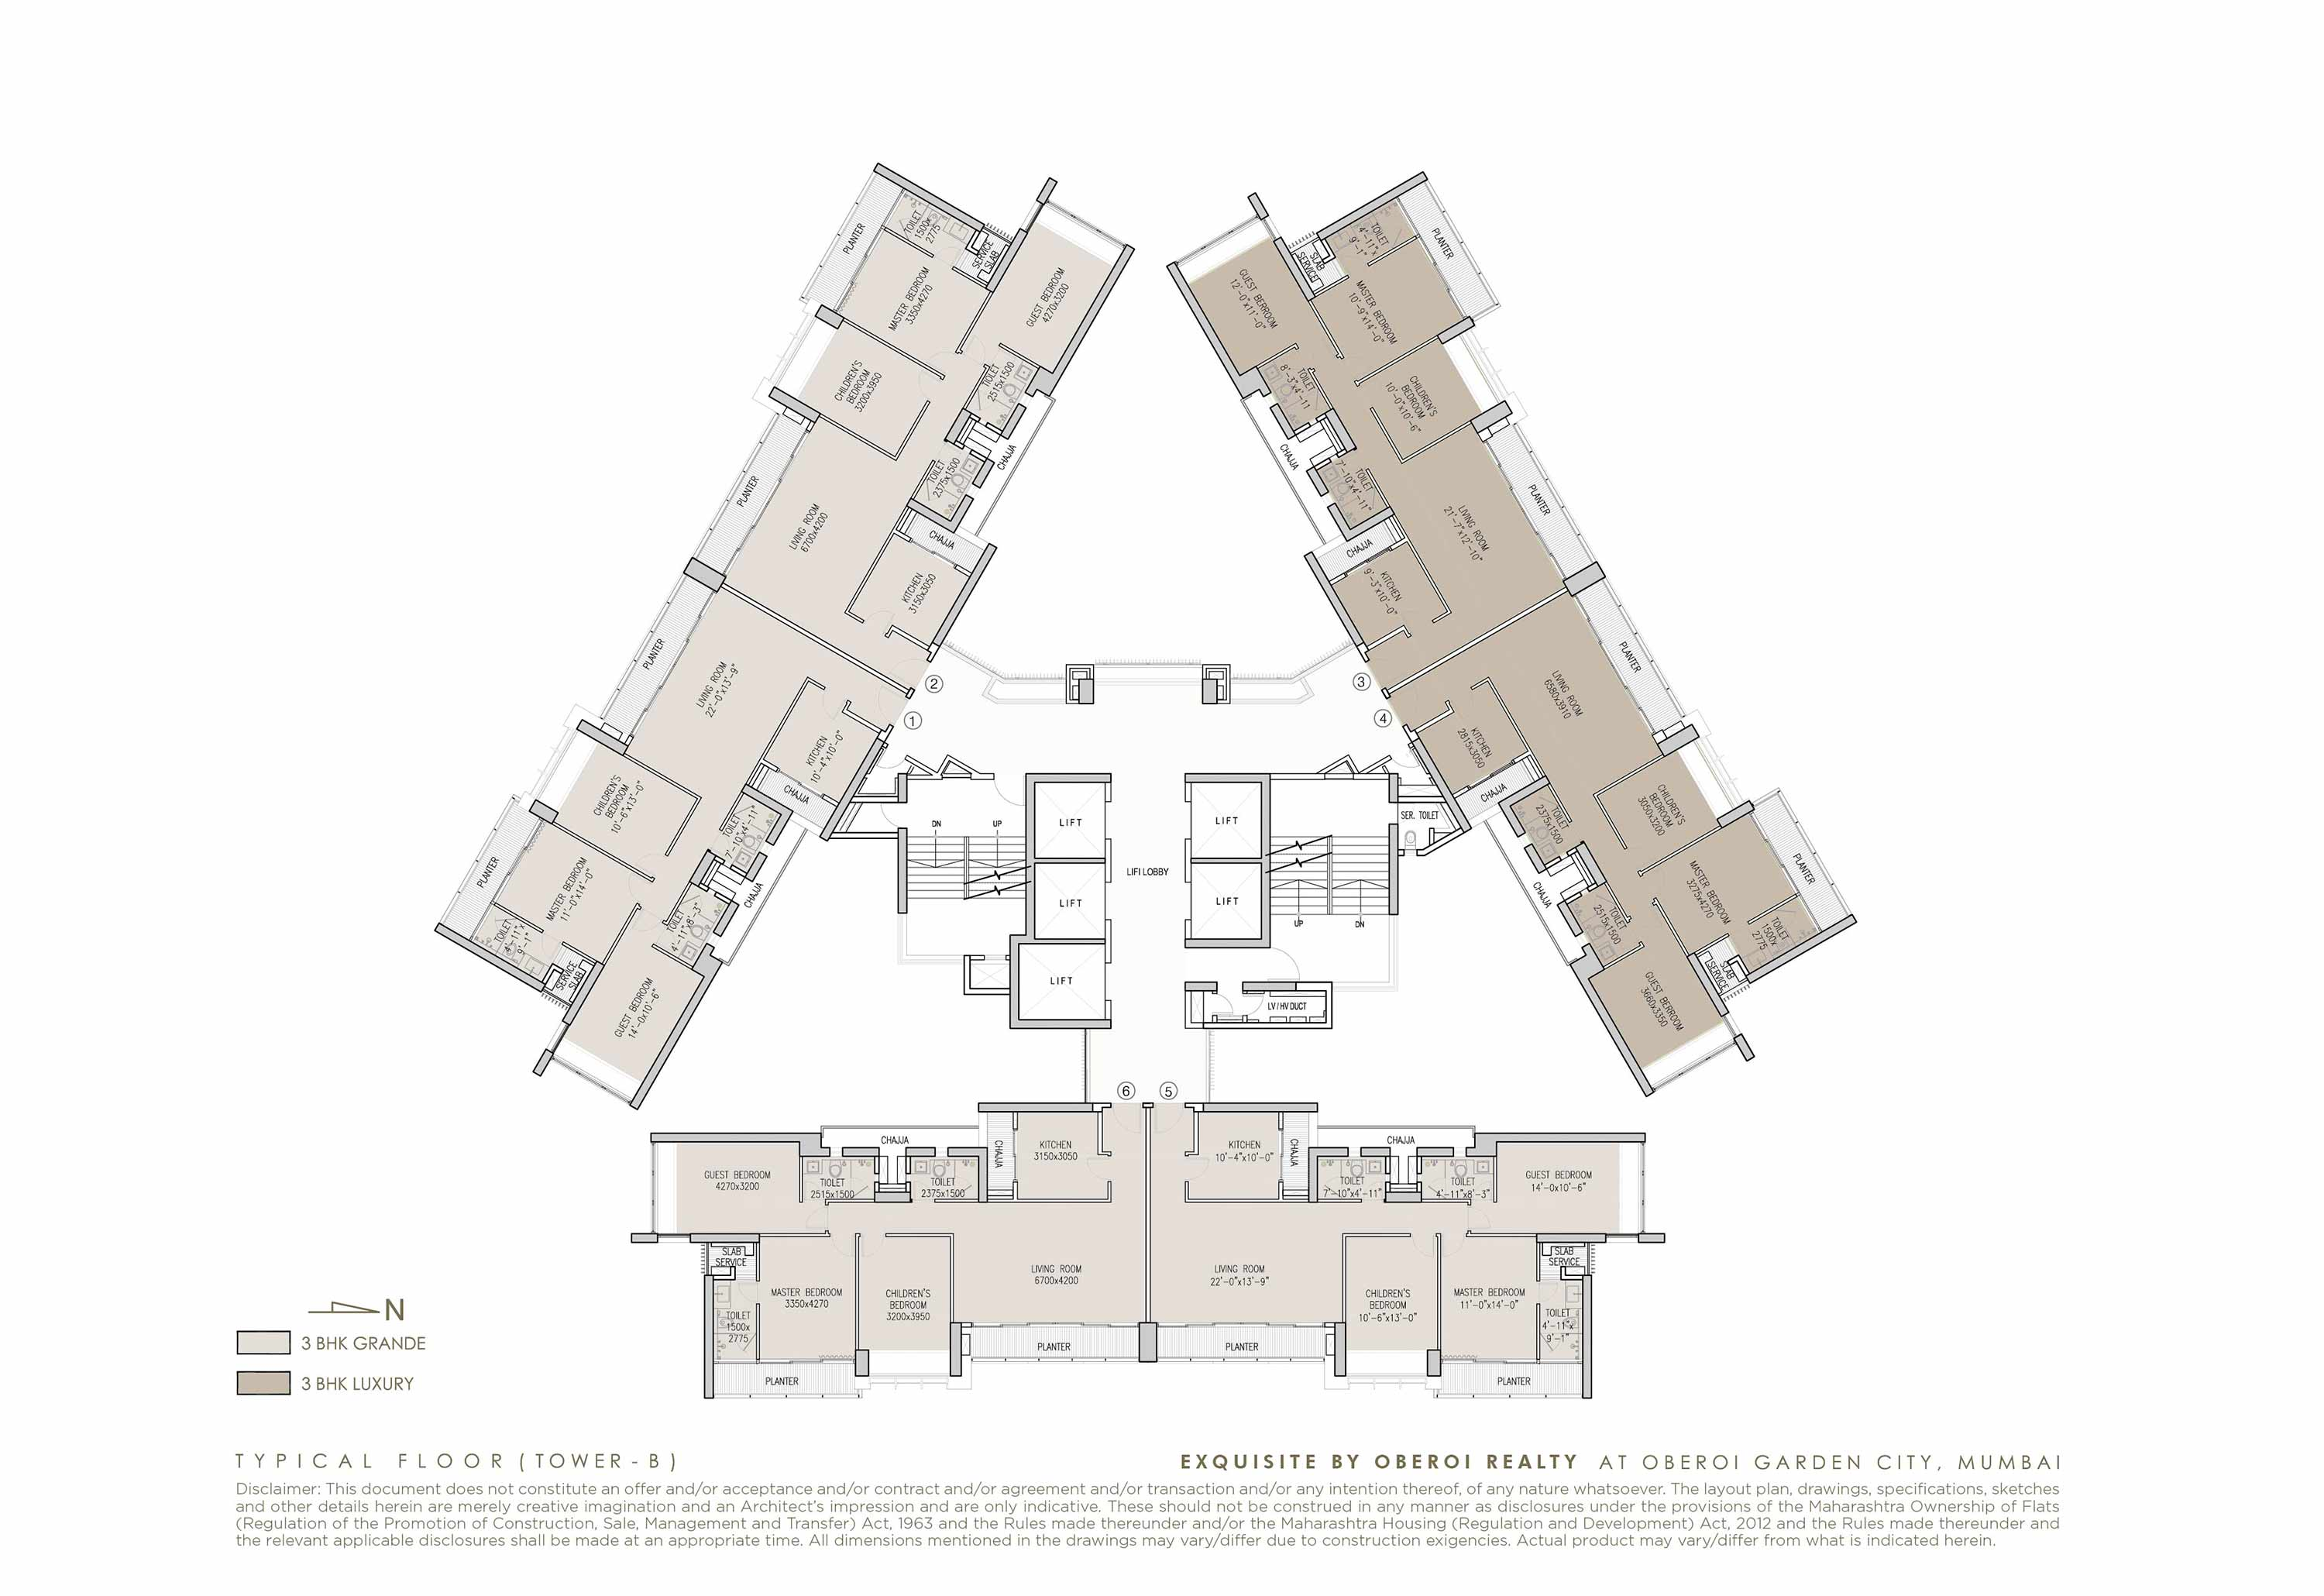 Exquisite: Luxury Flats: Goregaon (E) Mumbai: Floor Plan: 2